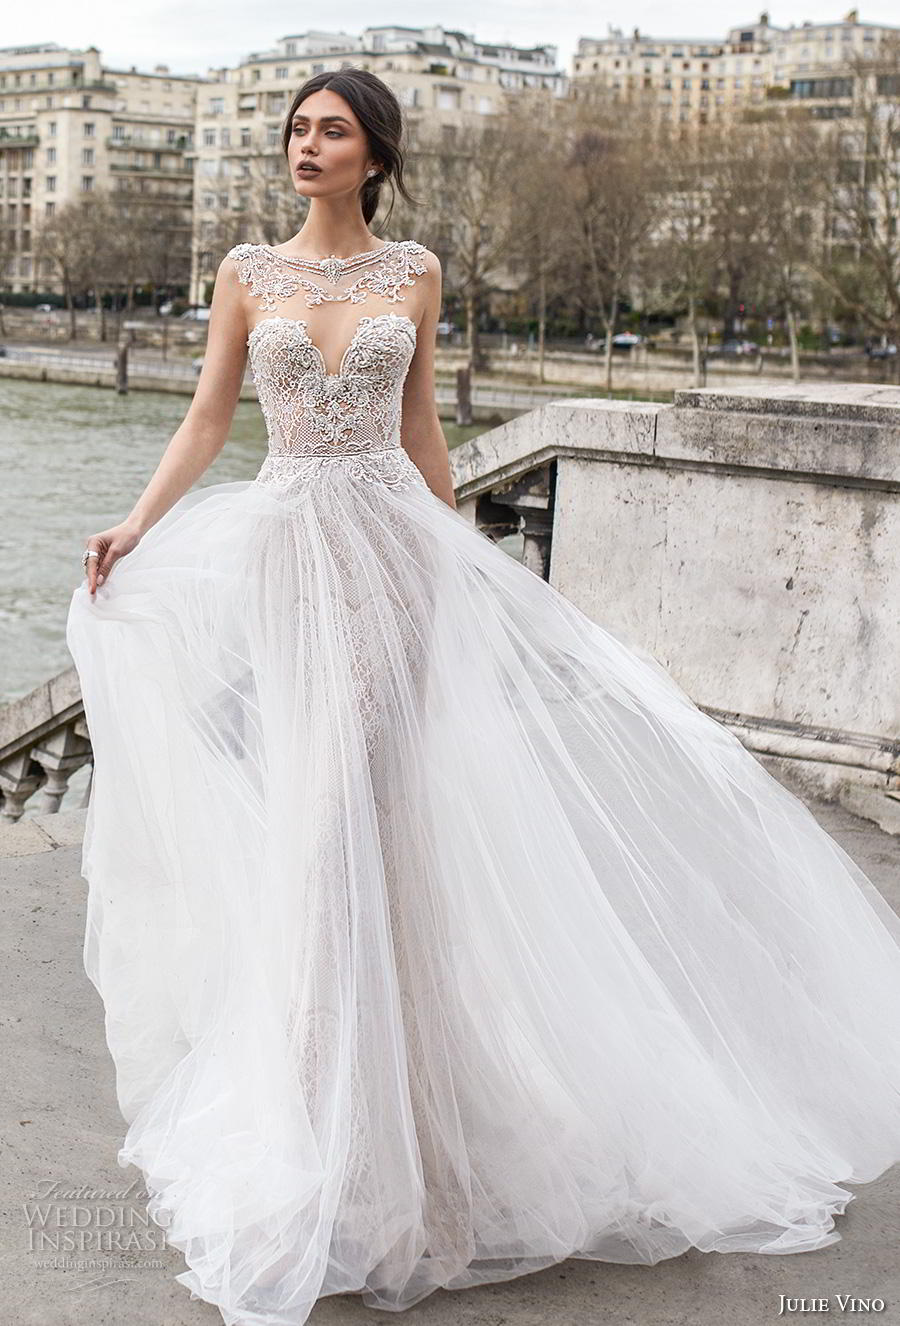 julie vino 2019 paris bridal sleeveless bateau sweetheart neckline heavily embellished bodice glamorous romantic fit and flare wedding dress a  line overskirt keyhole back chapel train (9) mv